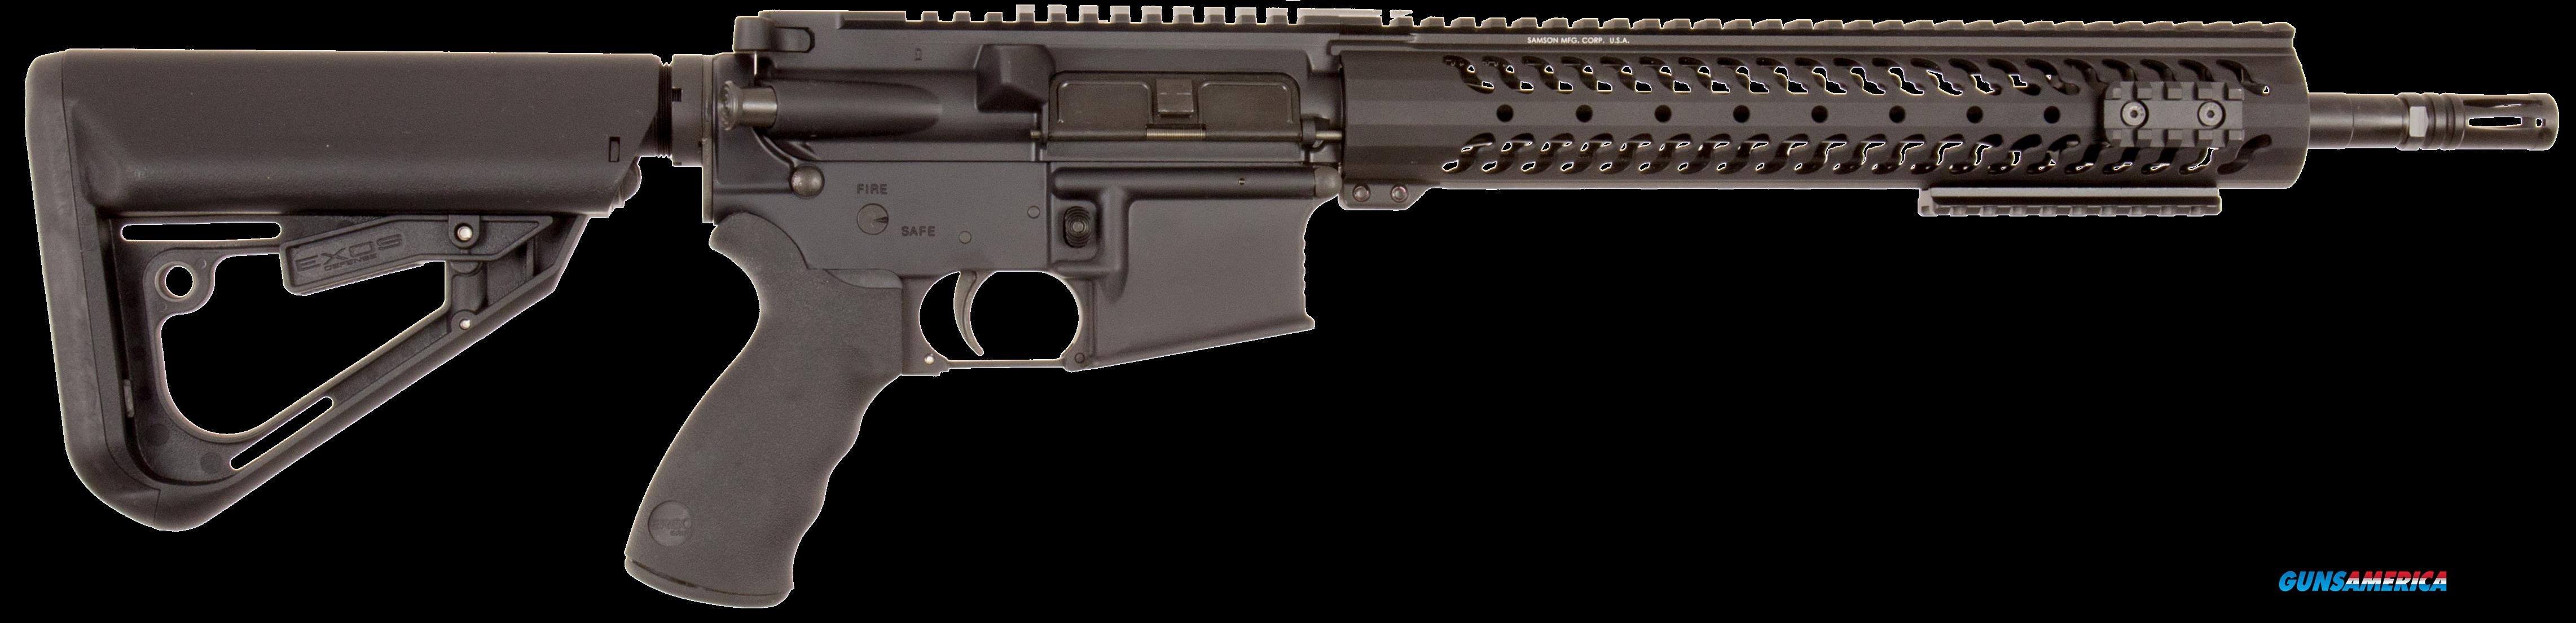 "Adams Arms RA145MXLPTEV Tactical Evo Mid 14.5"" SA 223 Rem 30+1 6Pos Blk  Guns > Rifles > A Misc Rifles"